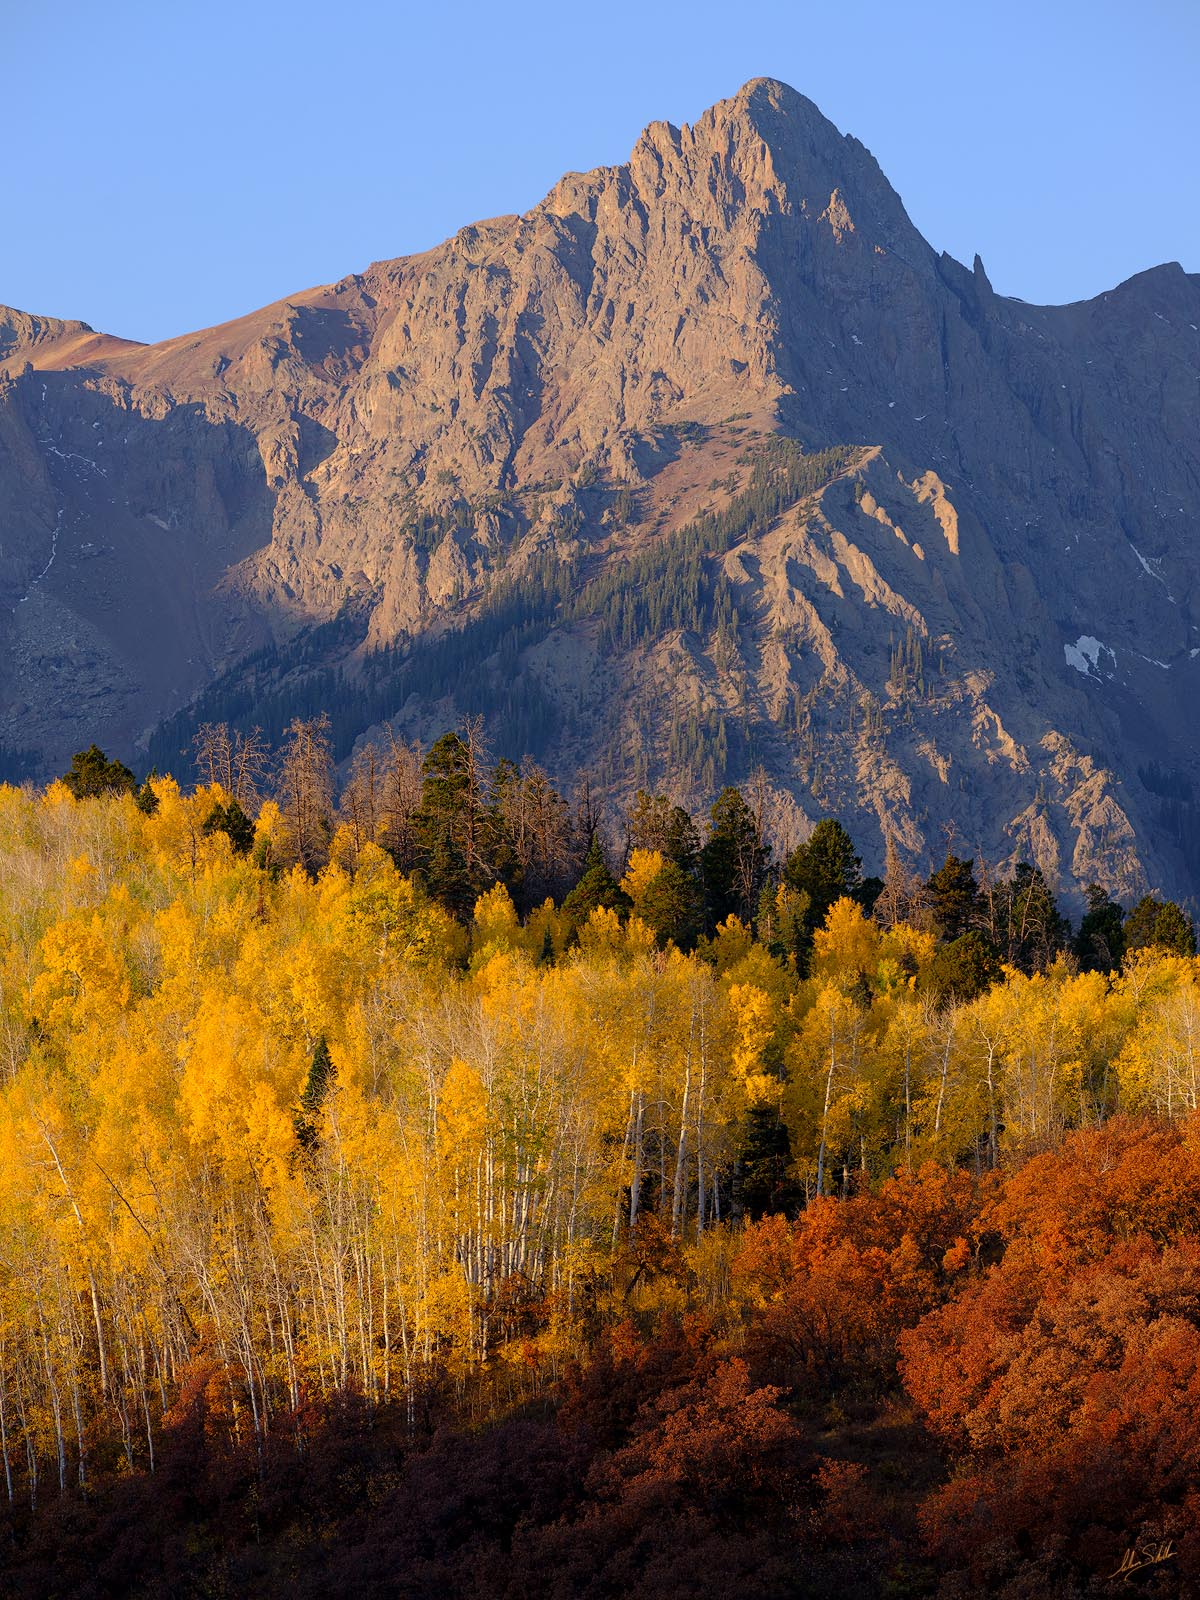 The autumn gold leaves of aspen trees appear to glow in the early morning light. From the San Juan Mountains of southwestern...